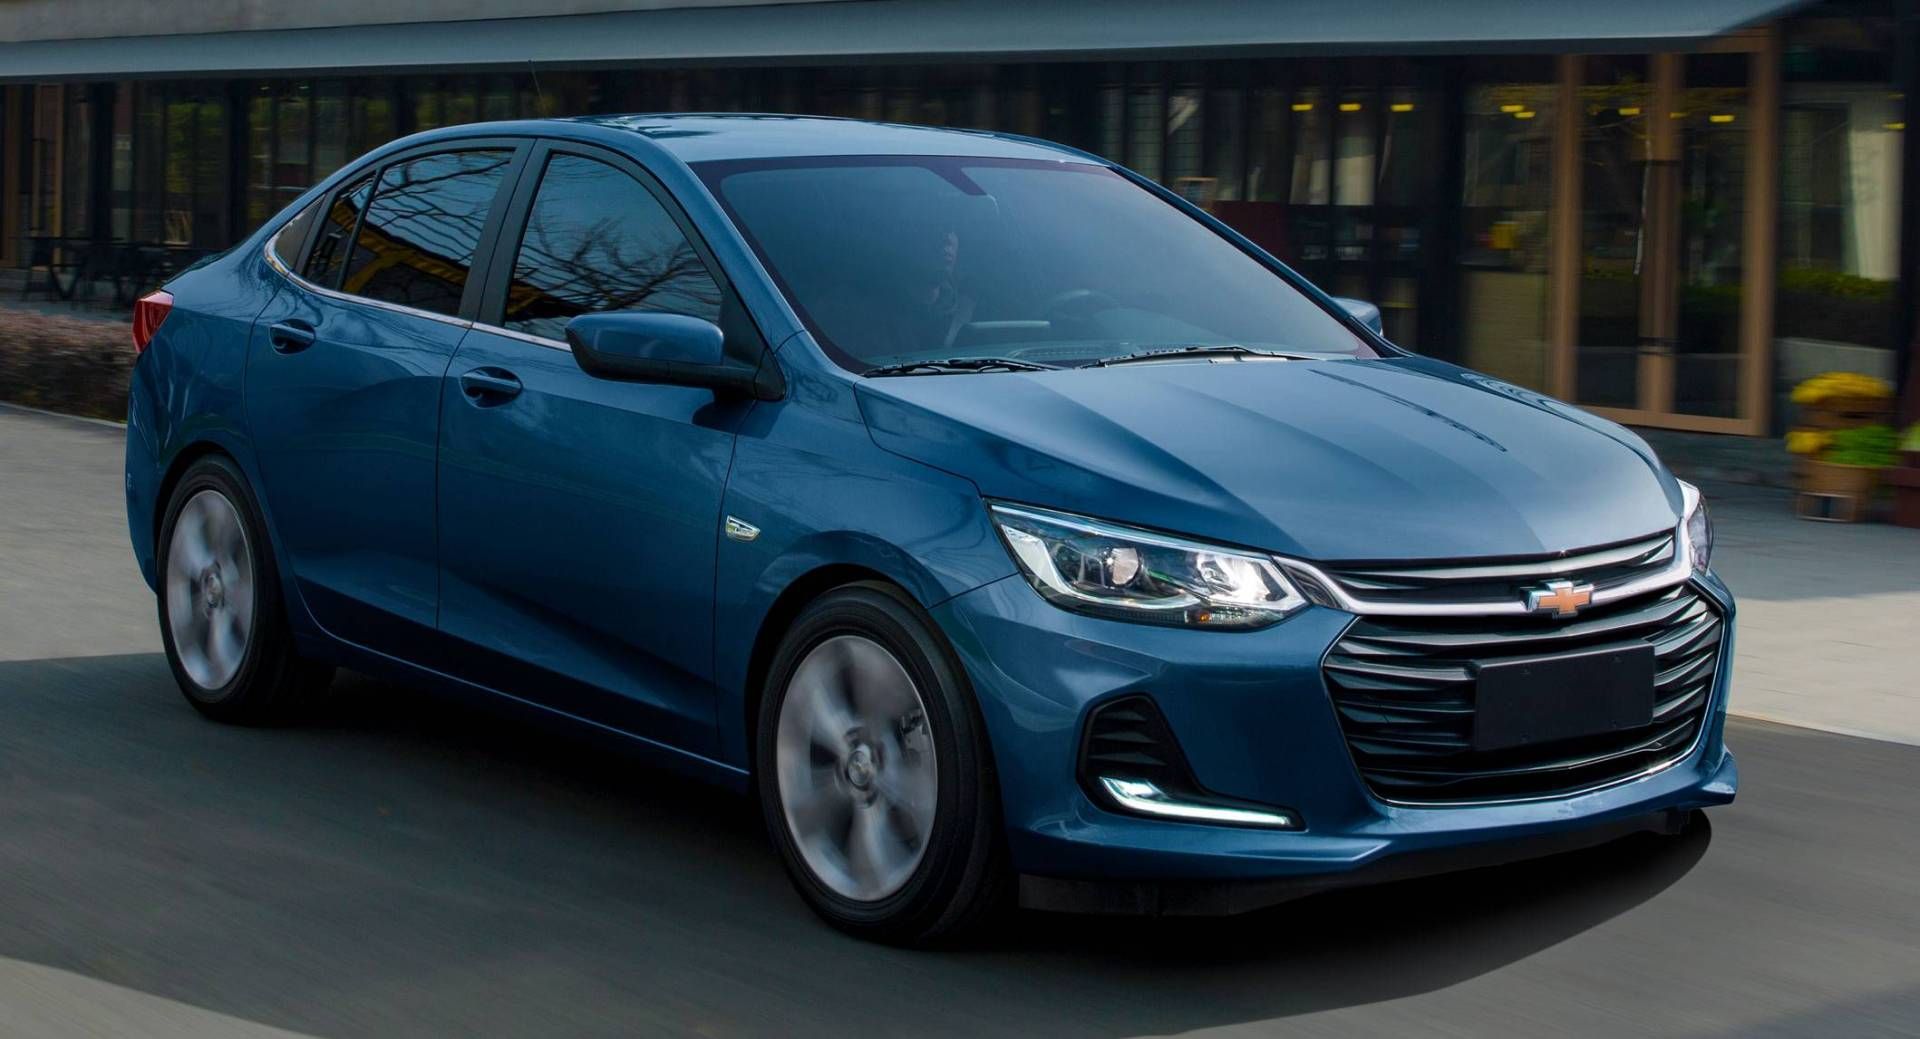 94 New Chevrolet Onix 2020 Ratings for Chevrolet Onix 2020